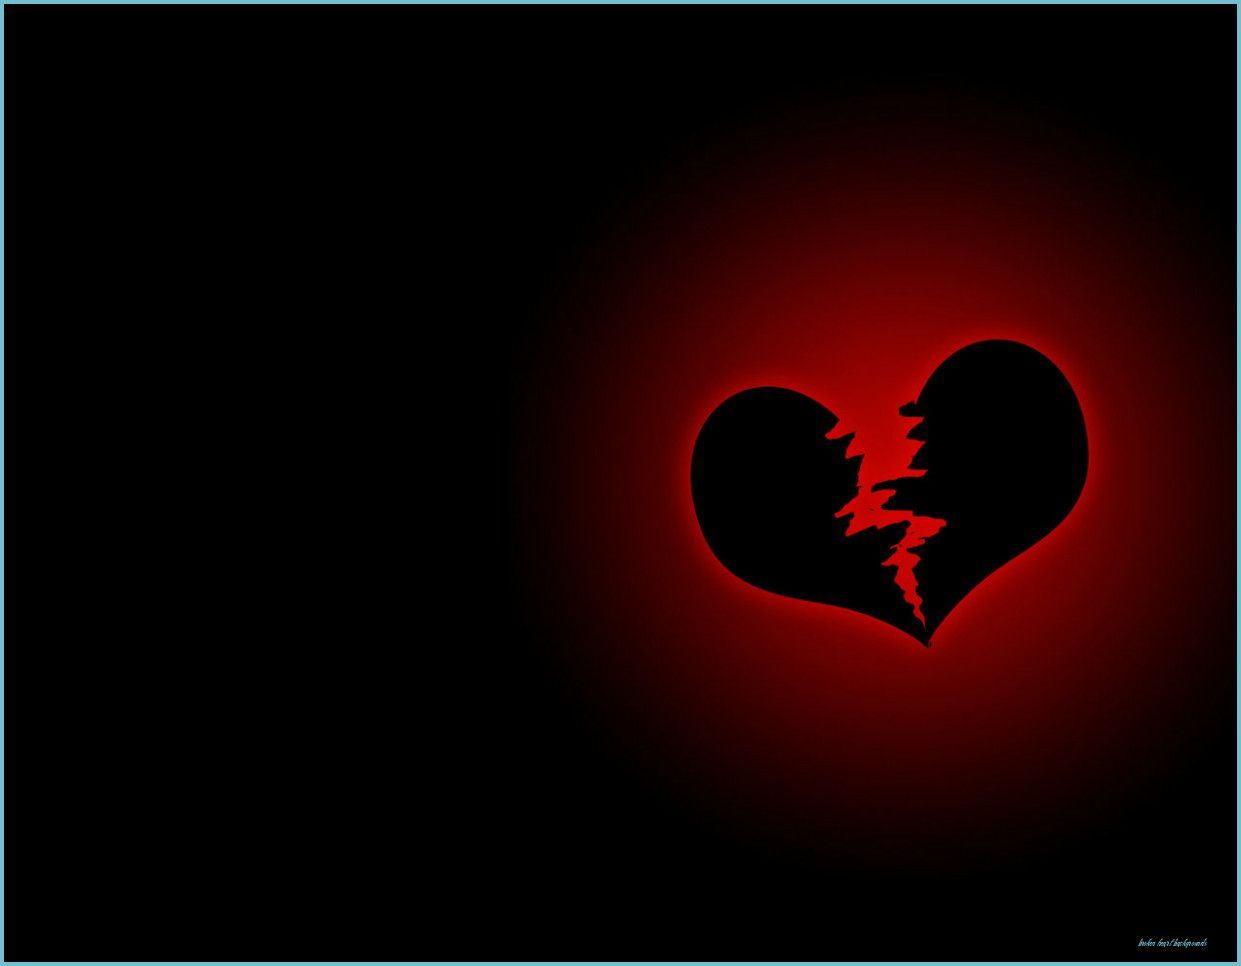 10 Mind Blowing Reasons Why Broken Heart Backgrounds Is Using This Technique For Exposure Broken Broken Heart Wallpaper Broken Heart Pictures Heart Wallpaper Alone full hd broken heart wallpaper